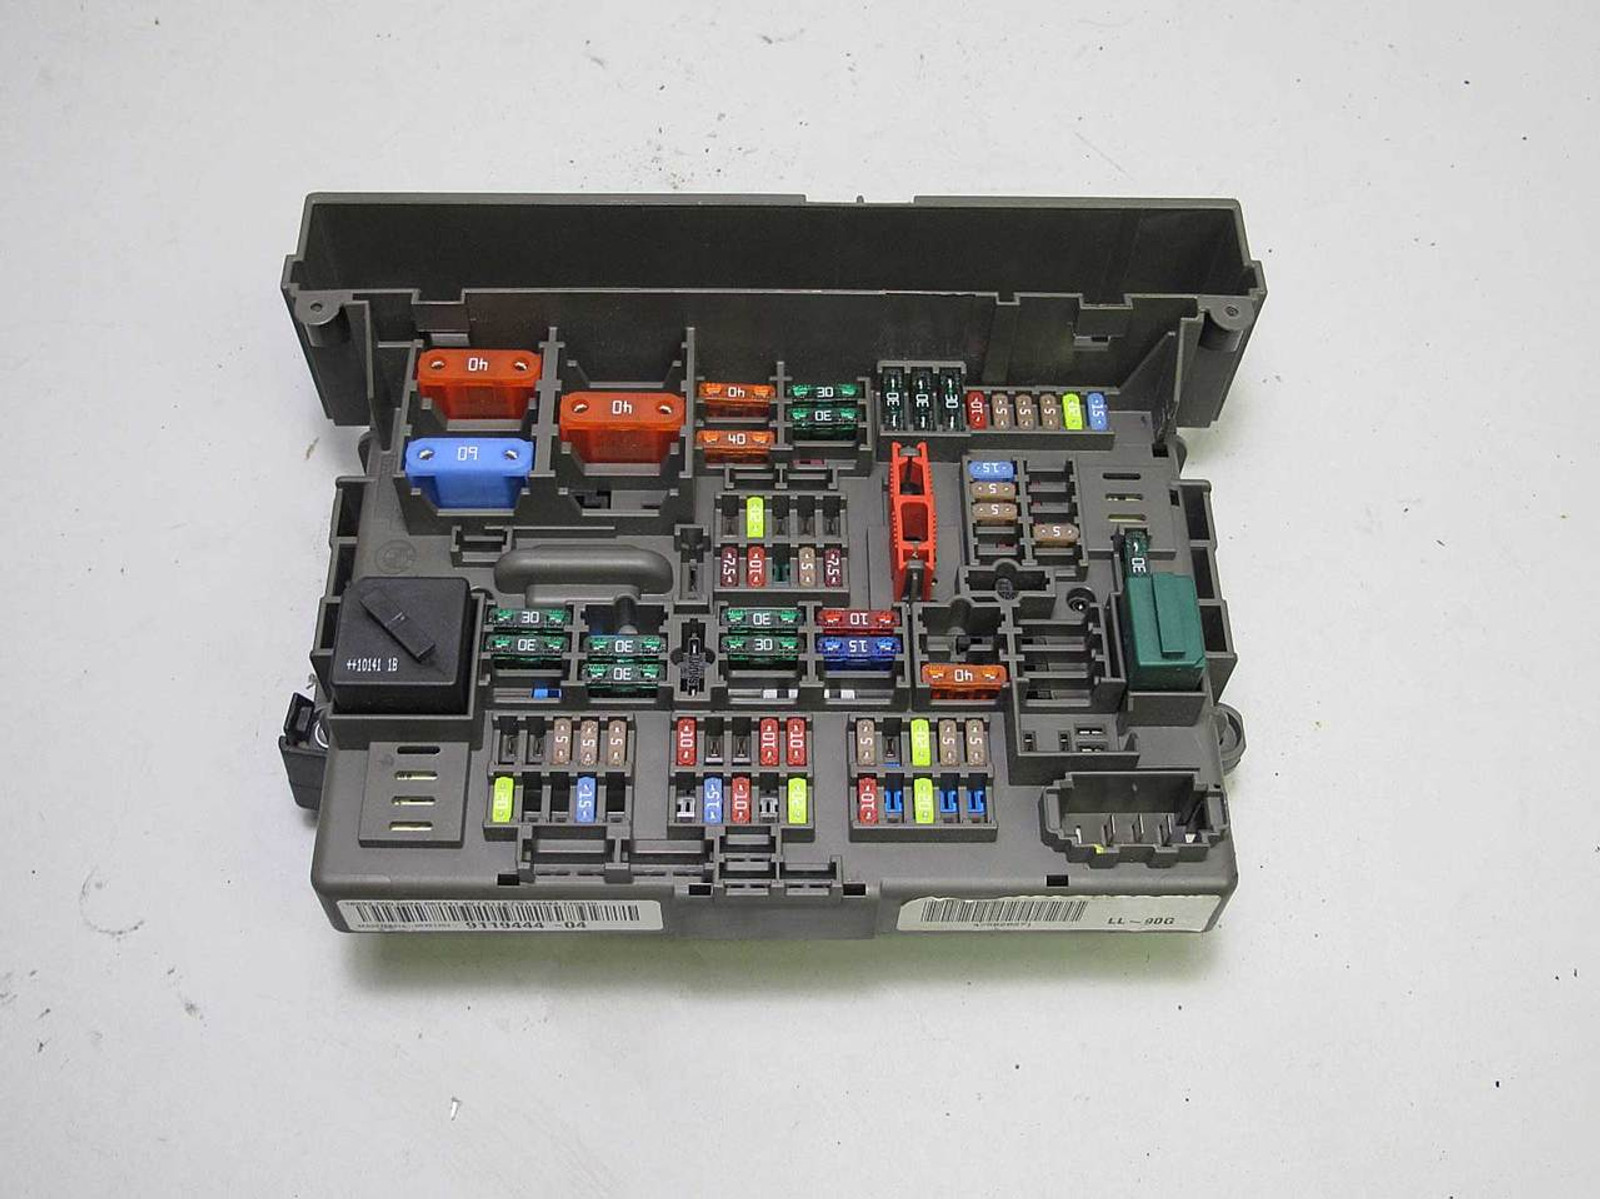 medium resolution of 2000 bmw 740il fuse box wiring diagrams schematics bmw 740il fuse box locations 740il bmw fuse